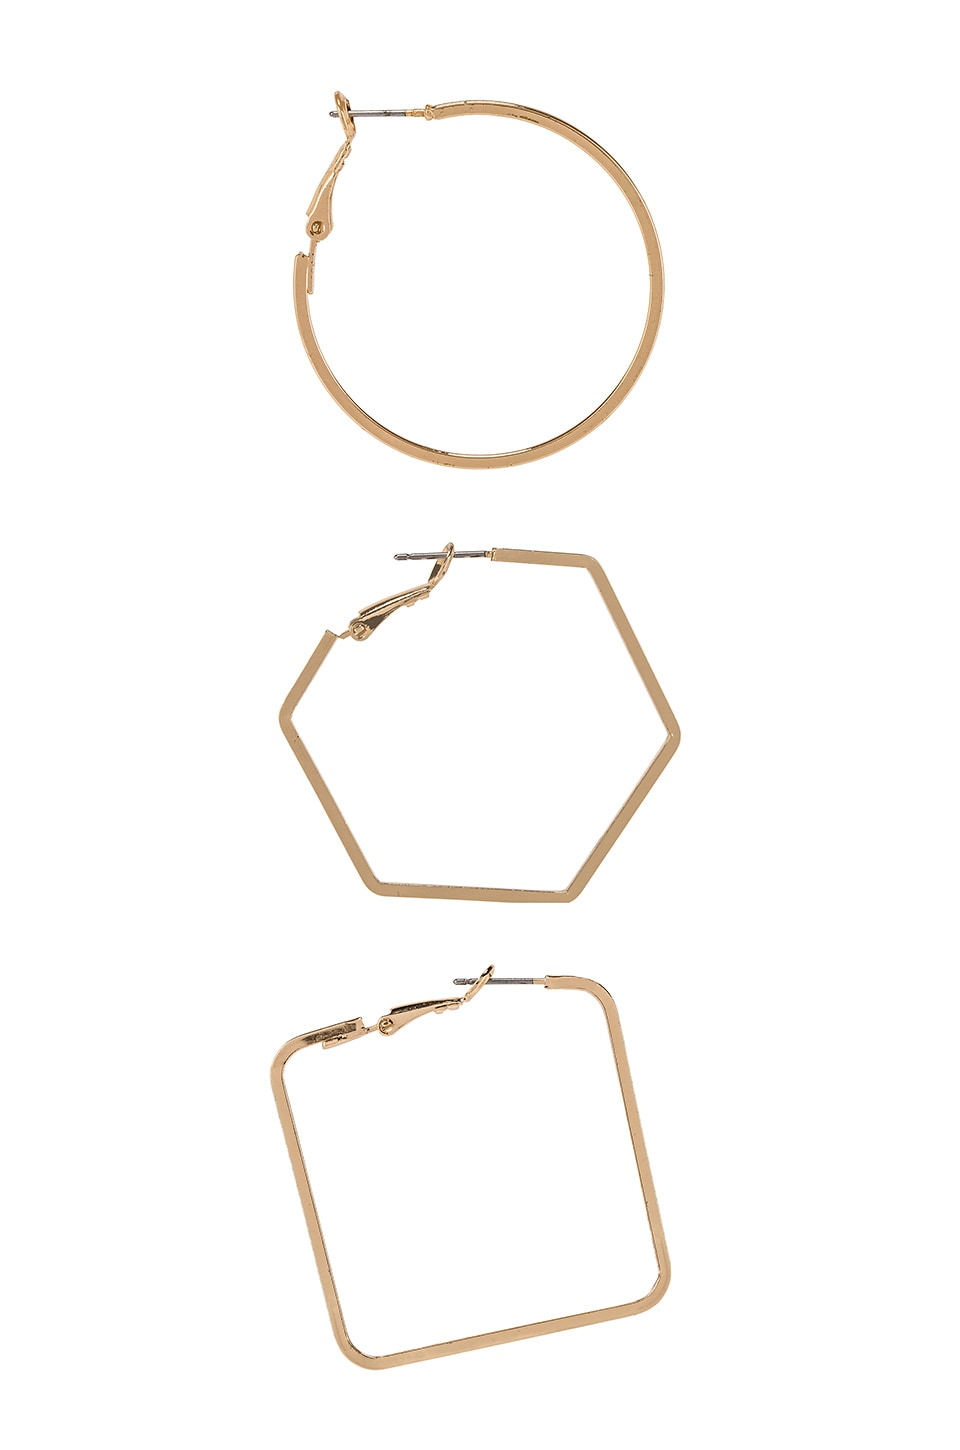 8 OTHER REASONS Amber Hoops in Gold